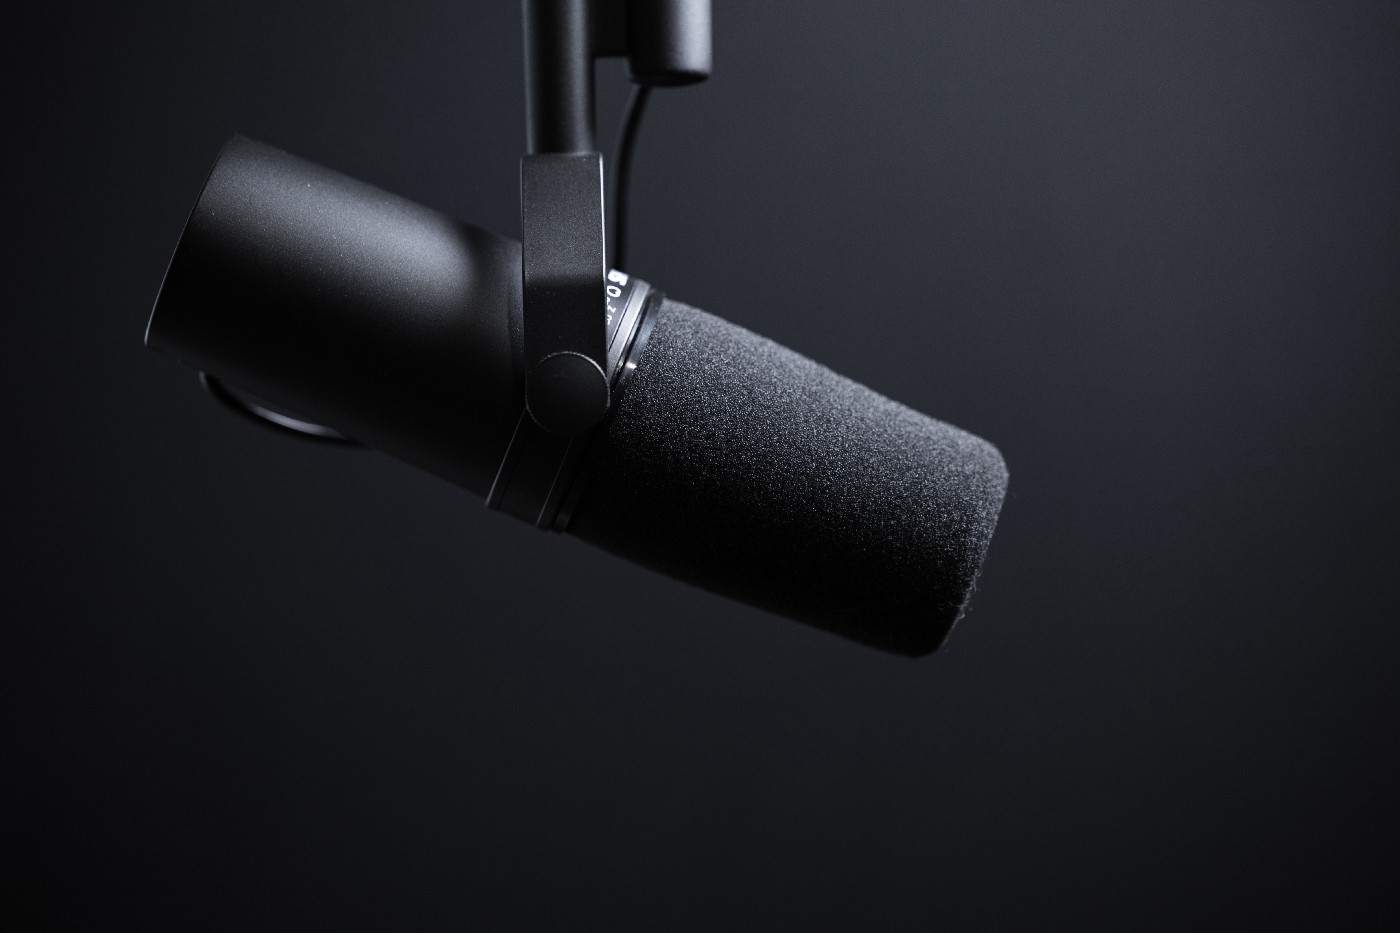 Podcaster Anne Muhlethaler of Out of the Clouds posts photo of a podcast mic